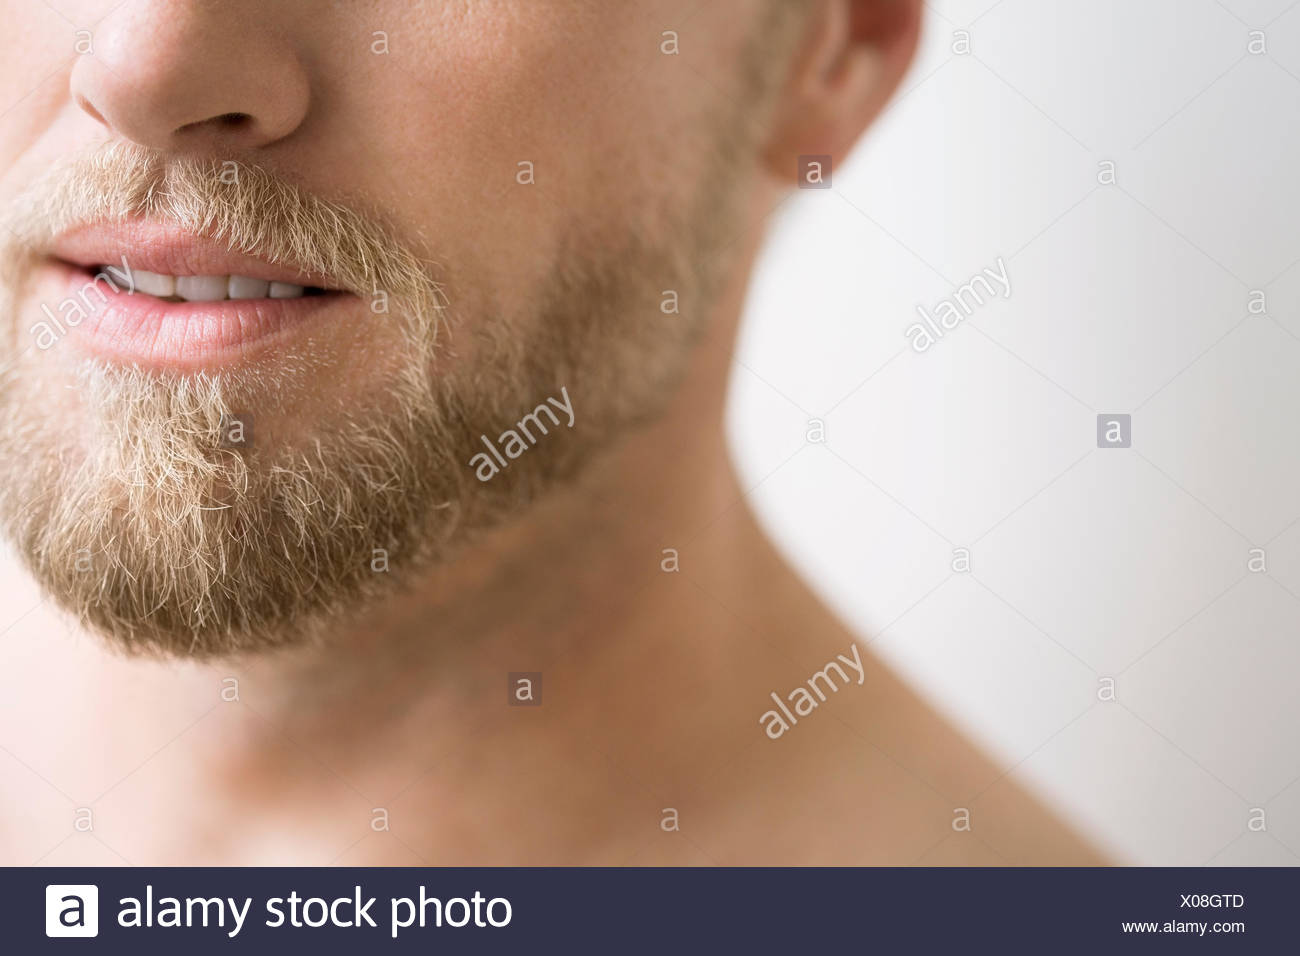 Close up of man with blonde beard - Stock Image